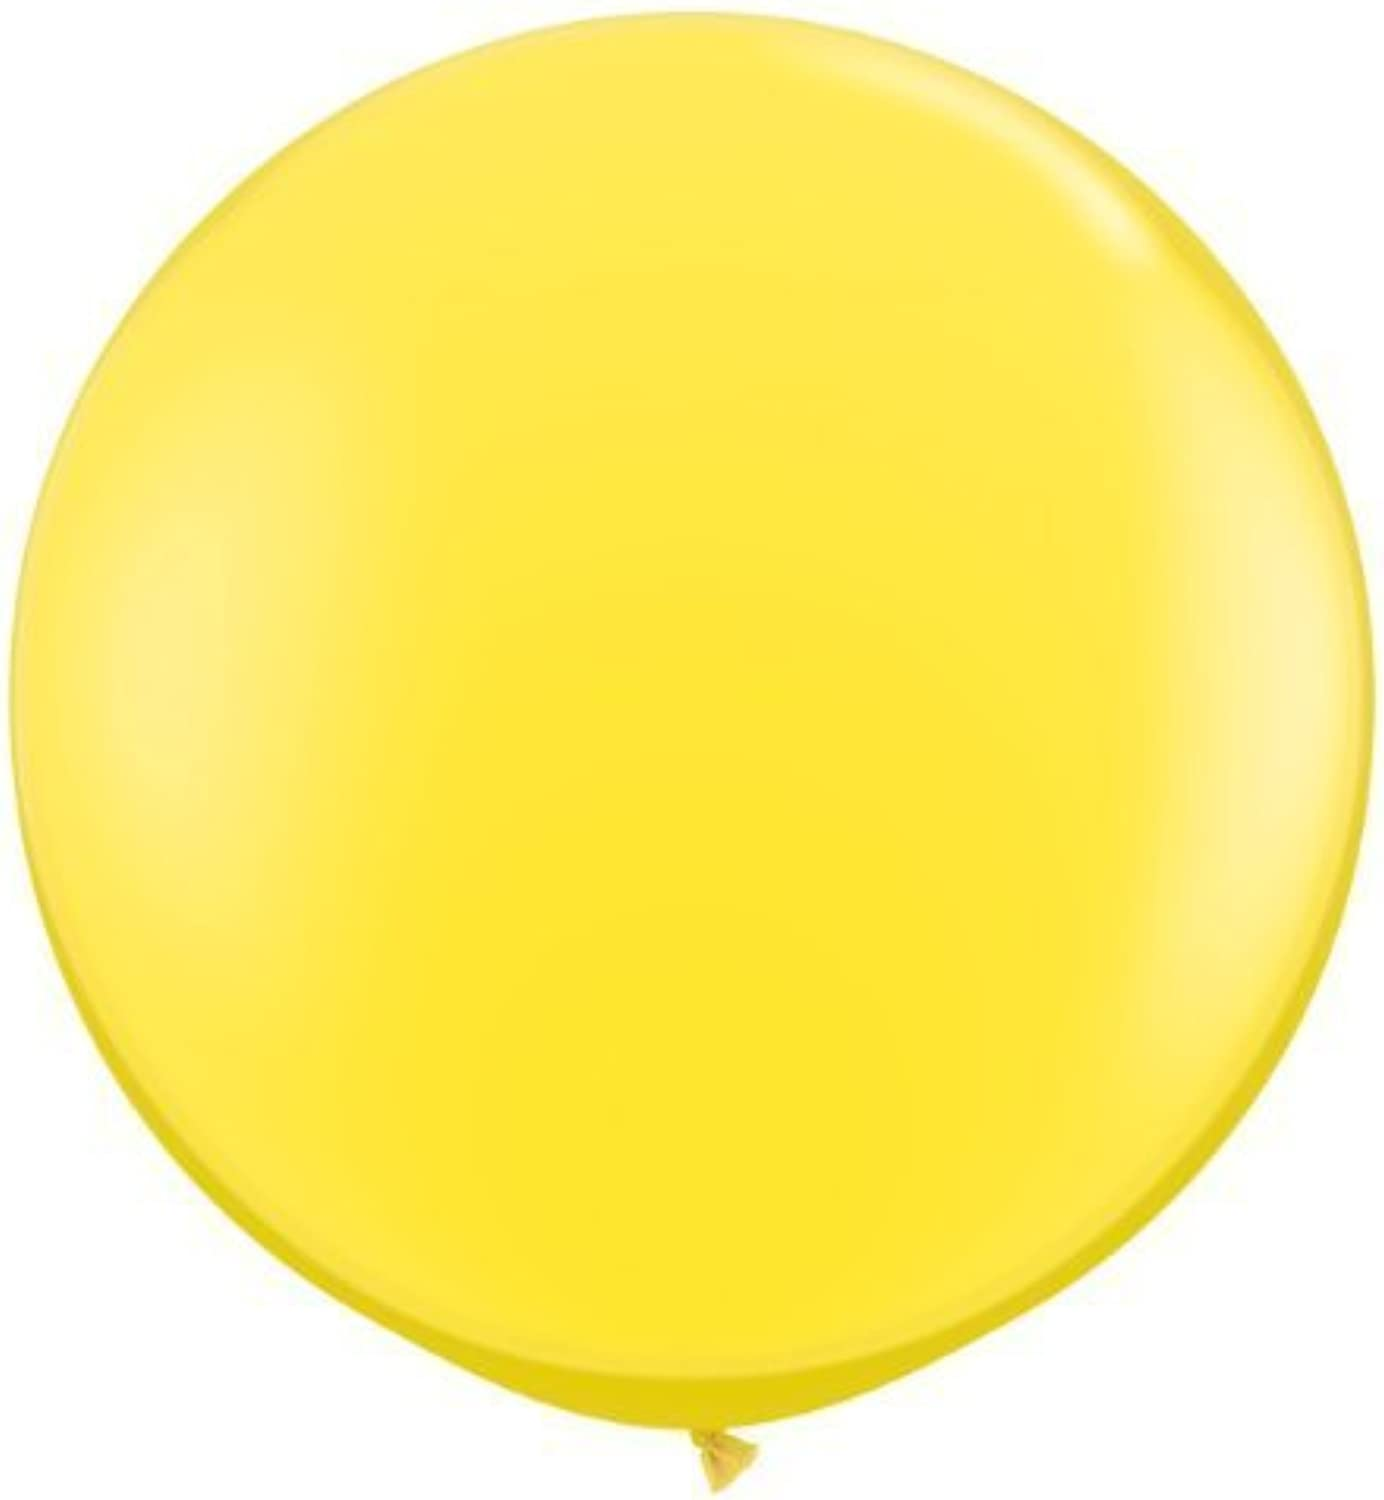 Yellow 3ft Qualatex Latex Giant Balloons x 2 by Standard Finish Solid Colour 3ft Latex